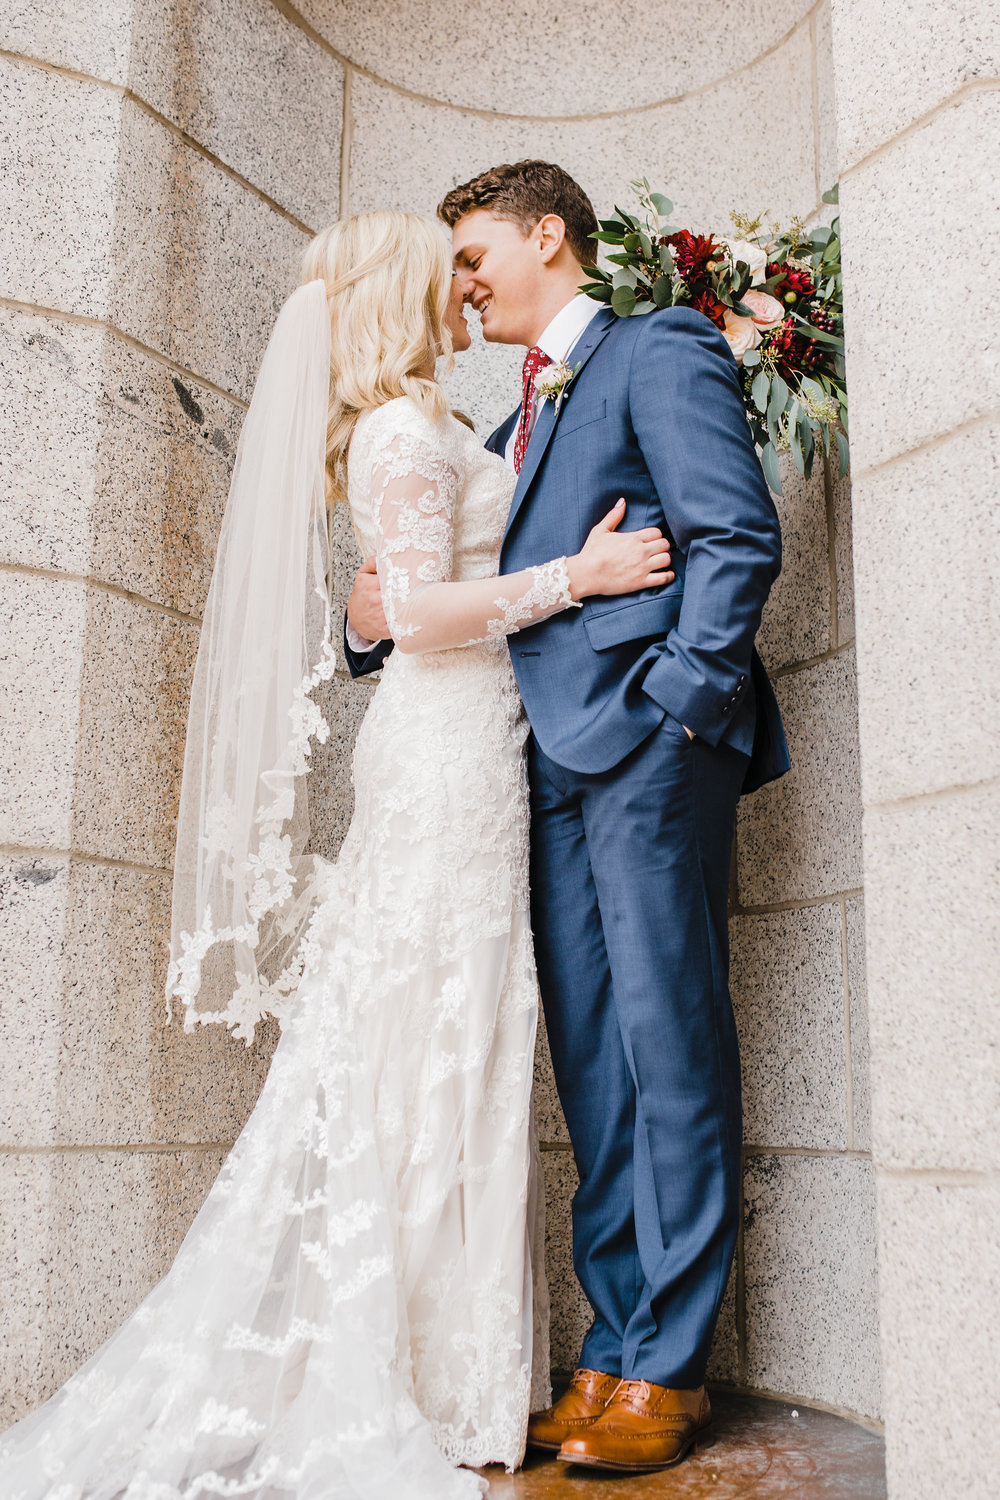 Salt Lake City Wedding Photographer Make the Most of Your Wedding Photography with a Bridal Veil